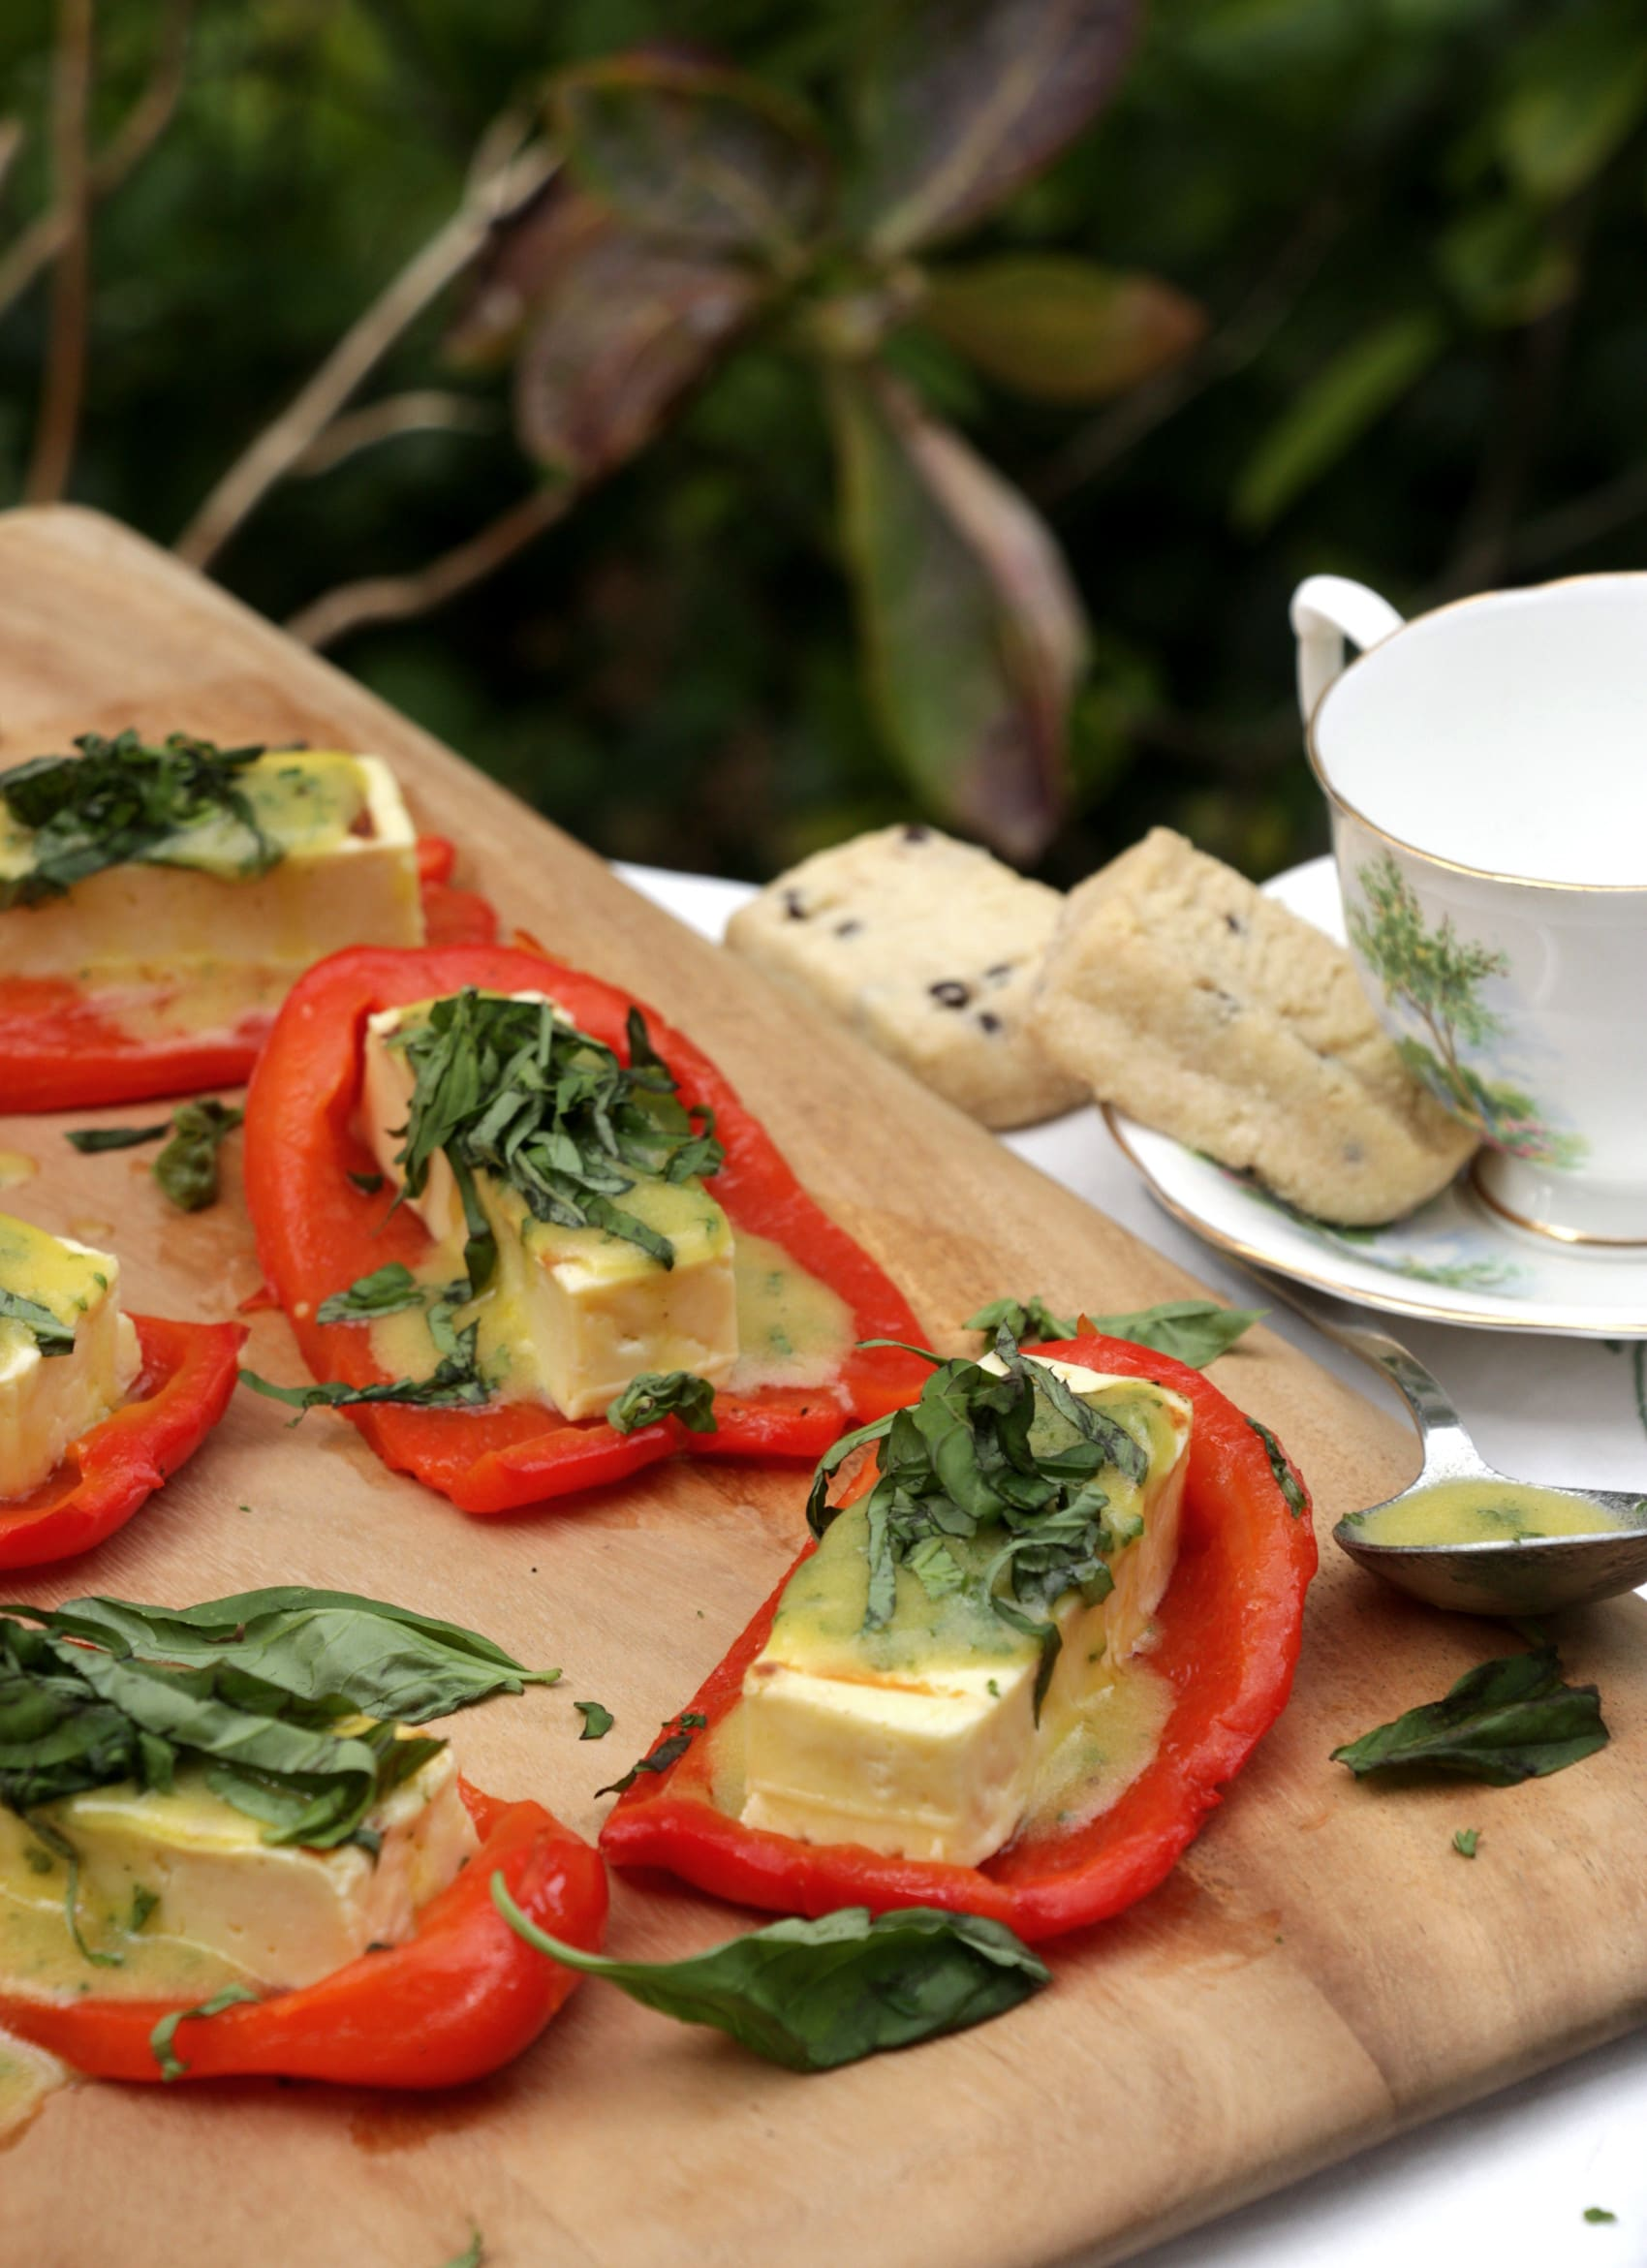 Grilled Halloumi Cheese with Roasted Red Peppers